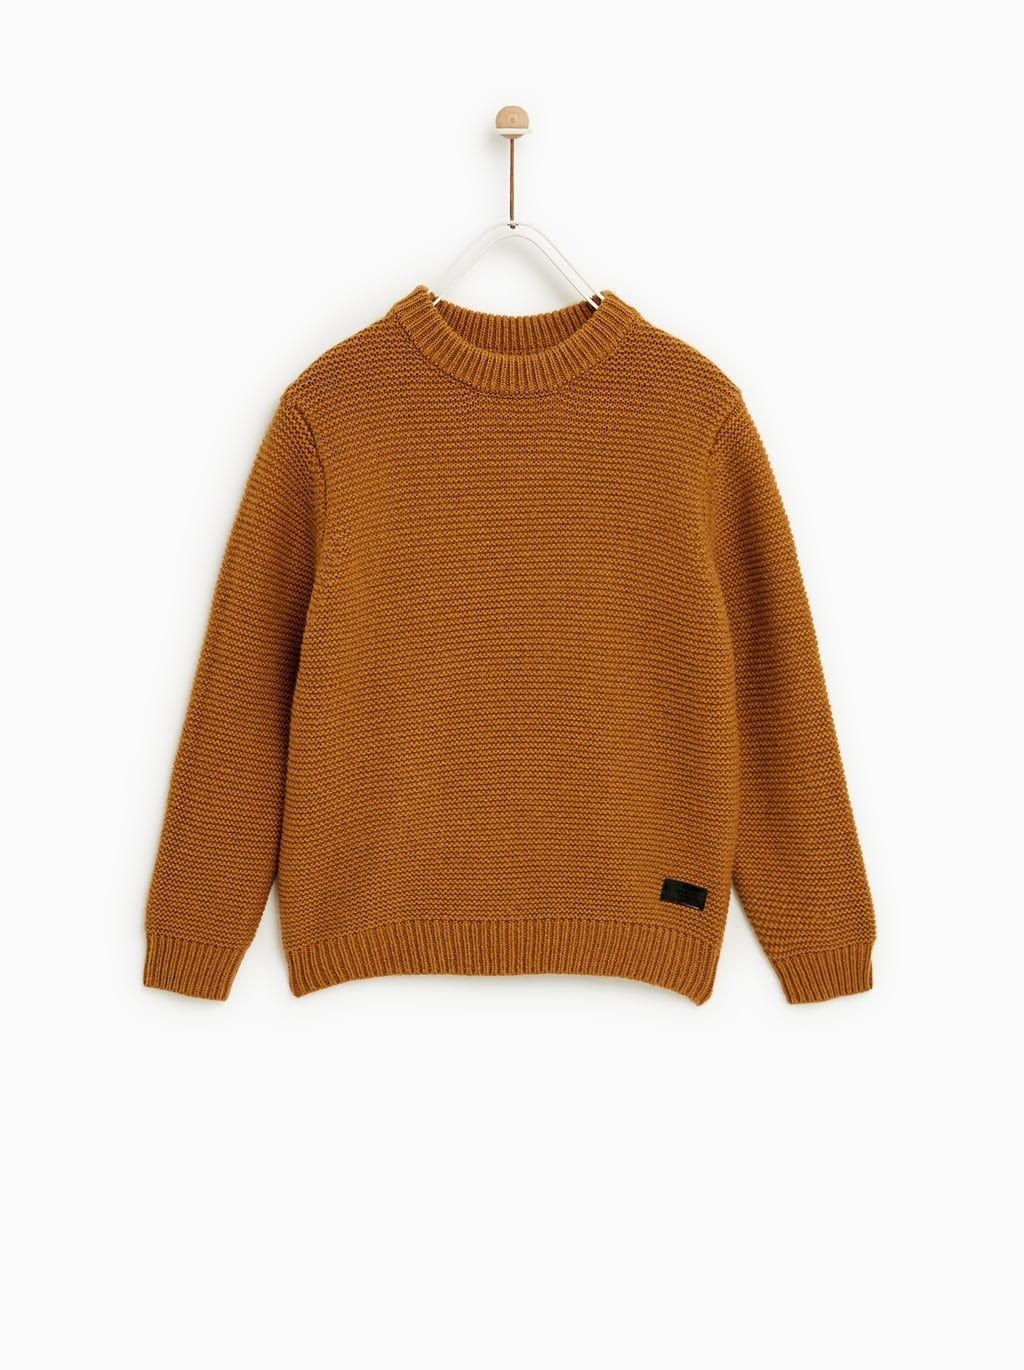 9fc4d3db2b7 BASIC CABLE KNIT SWEATER - Item available in more colors